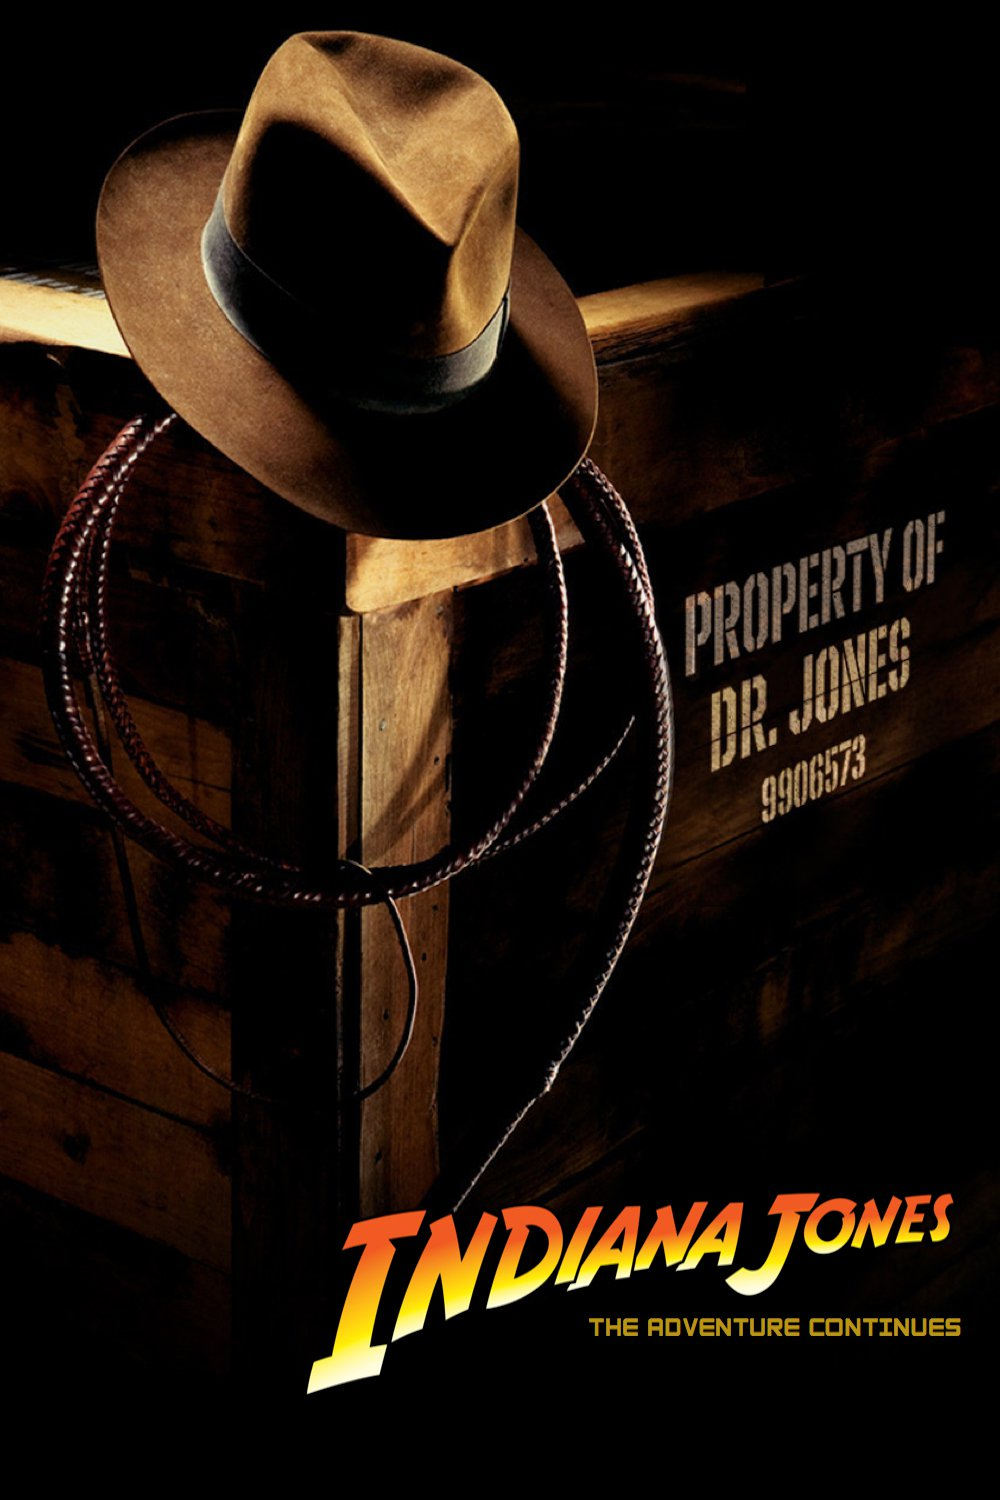 Indiana Jones 5 Teaser Movie Poster